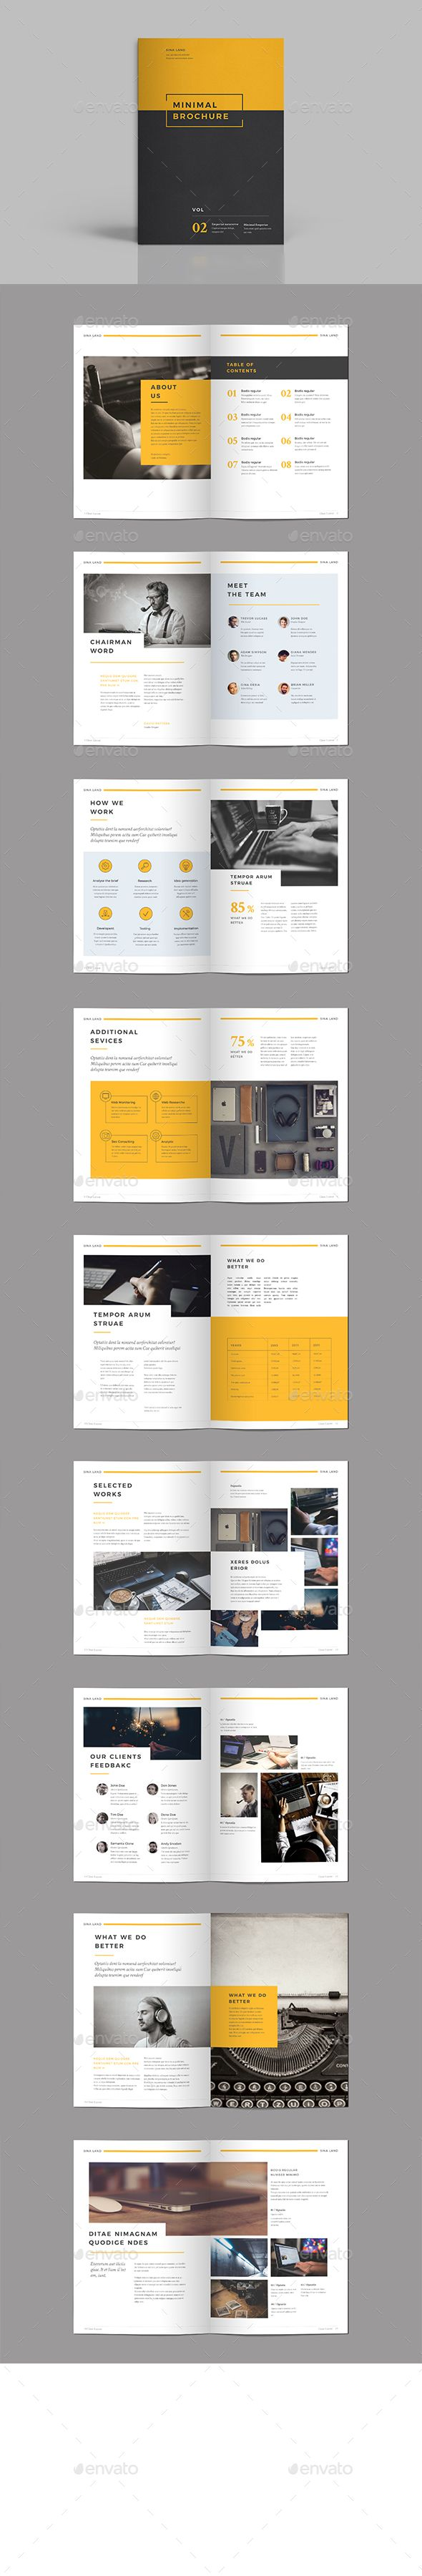 Minimal Brochure Design Template Vol III - Brochures Design Print Template InDesign INDD. Download here: https://graphicriver.net/item/minimal-brochure-vol-iii/19330885?ref=yinkira